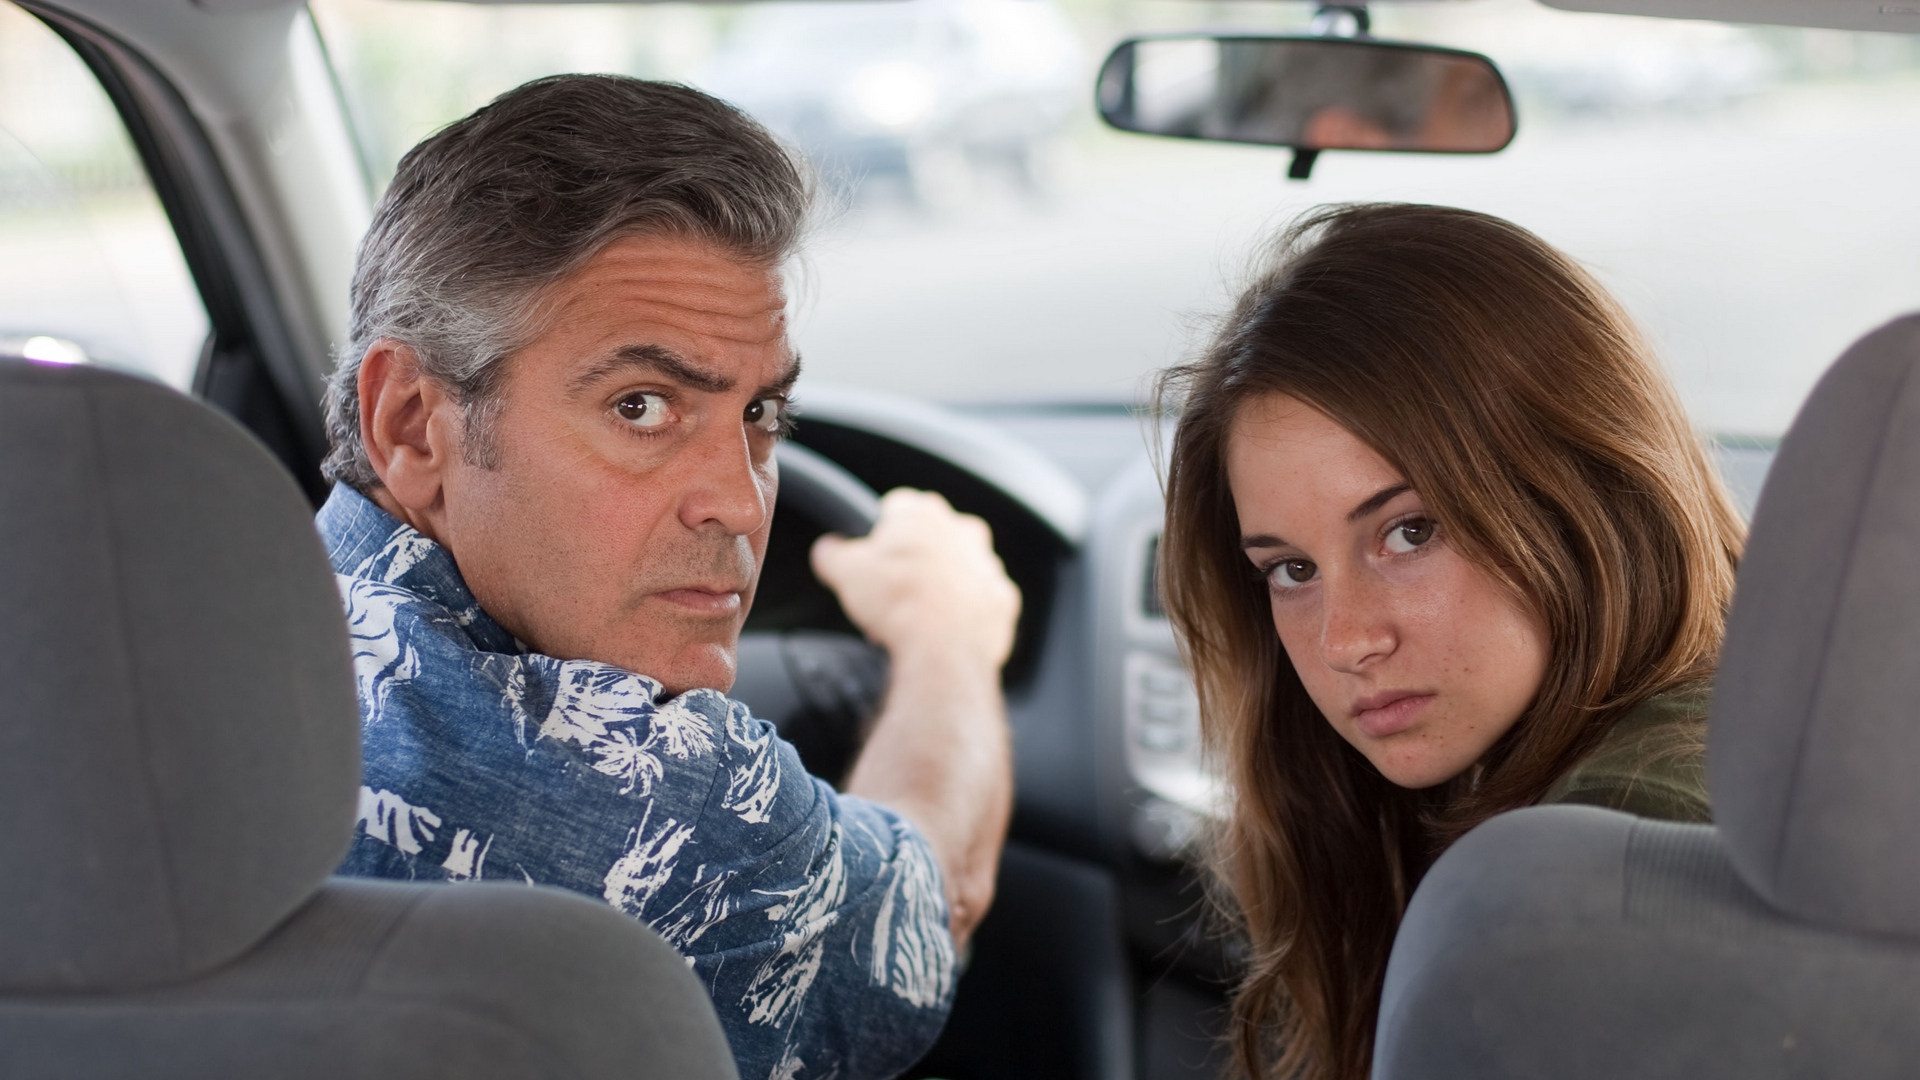 Download wallpaper 1920x1080 the descendants george clooney 1920x1080